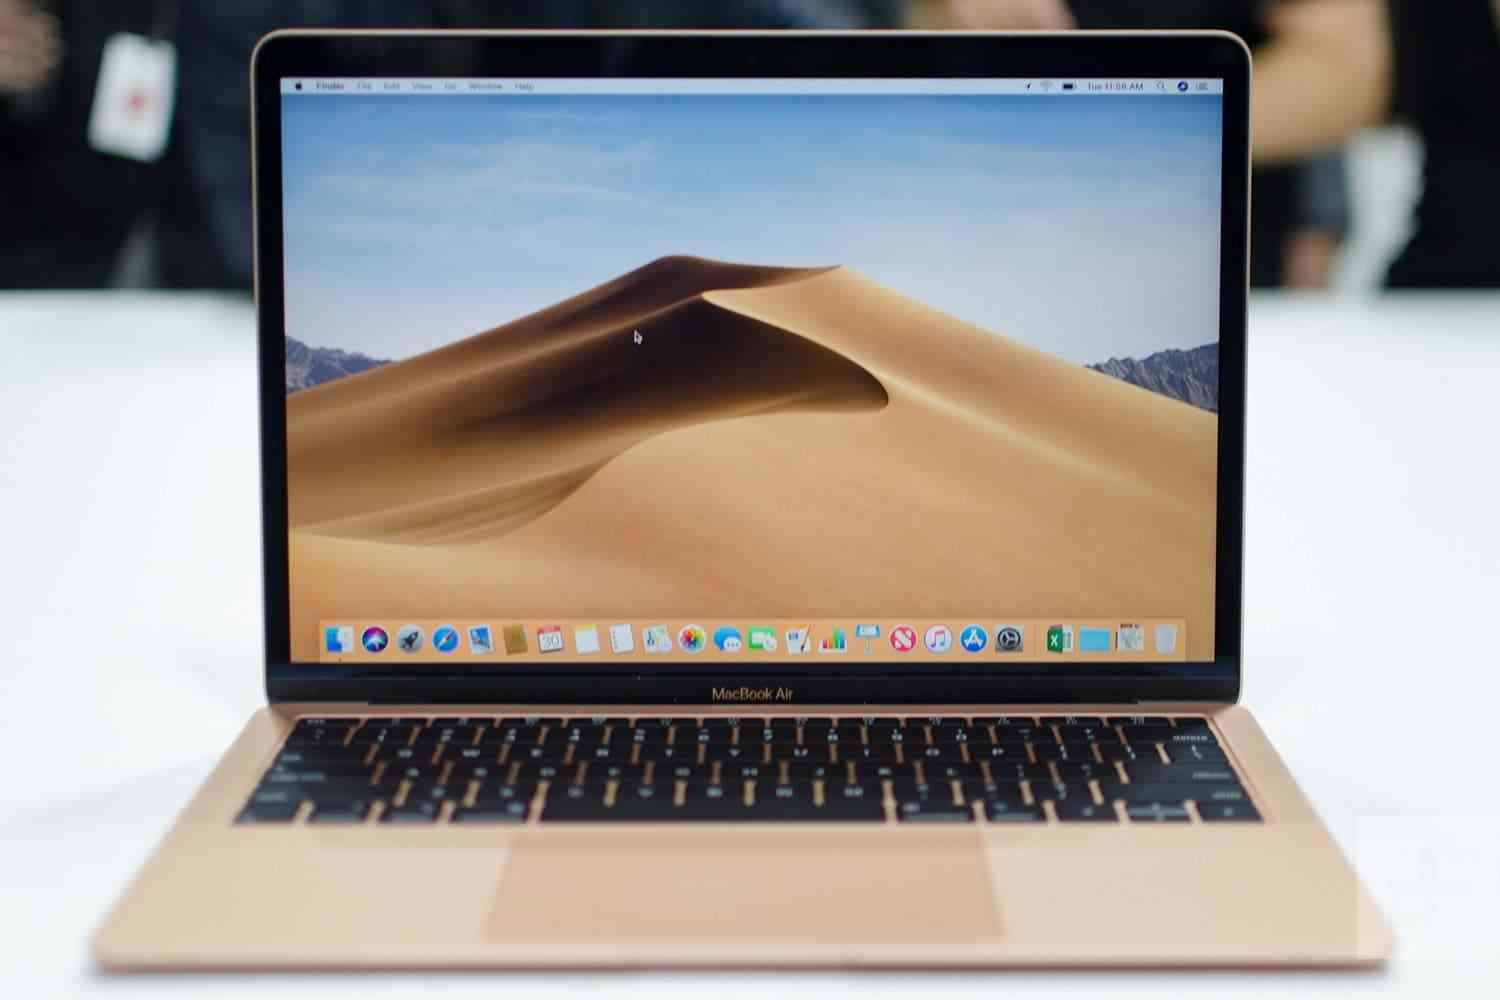 Laptop Apple Macbook Air 2018 MRE82